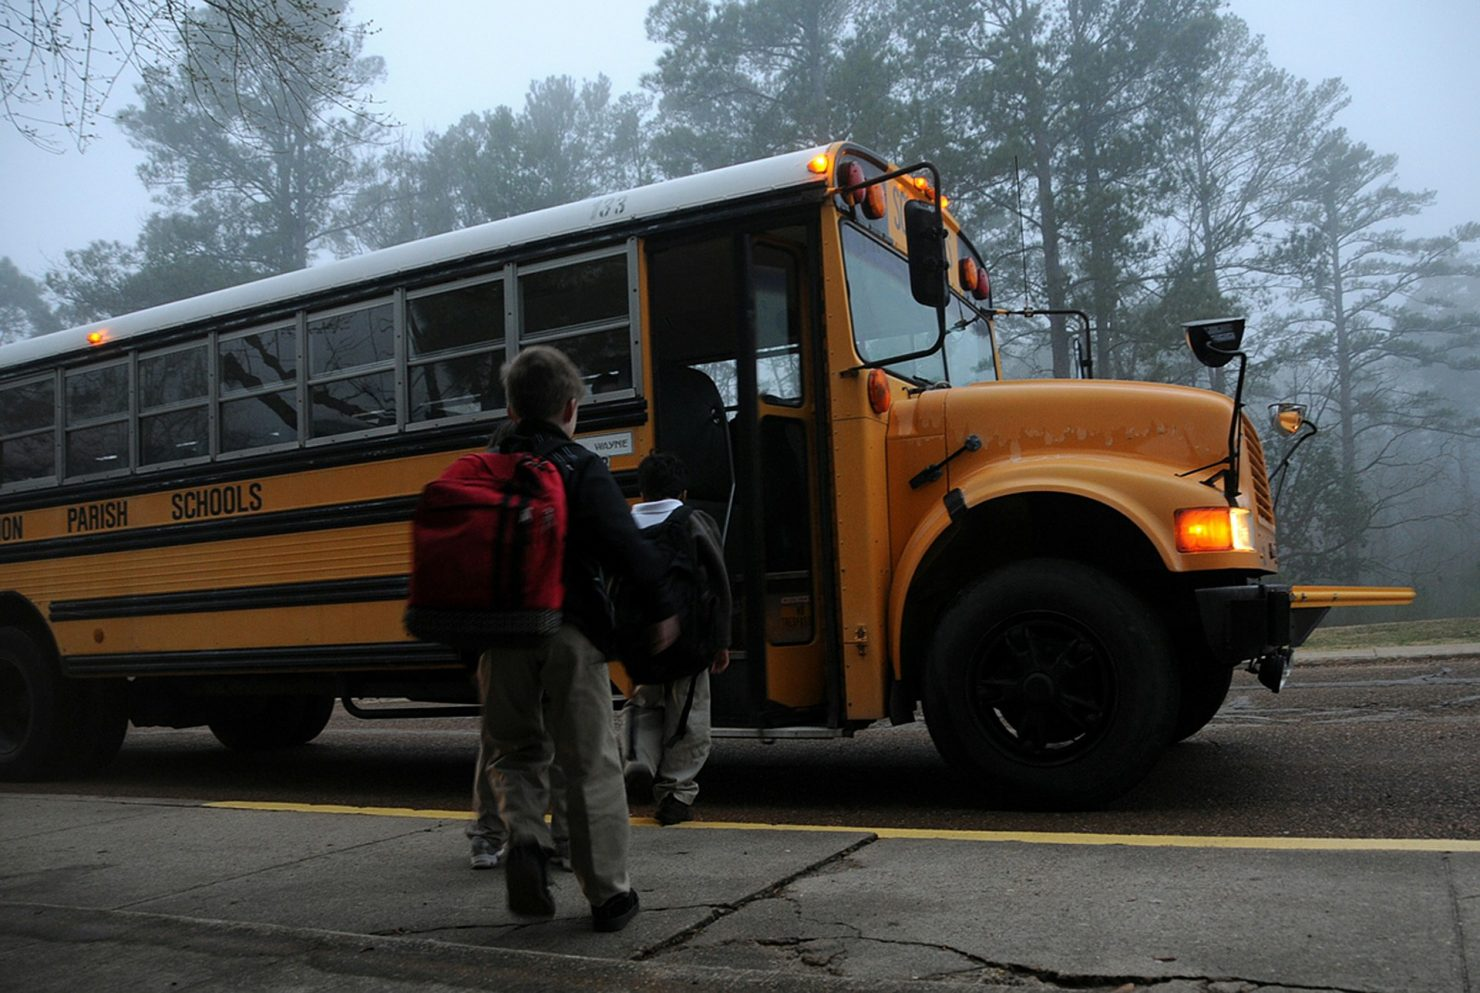 Are Buses Safer or More Dangerous Than Cars?